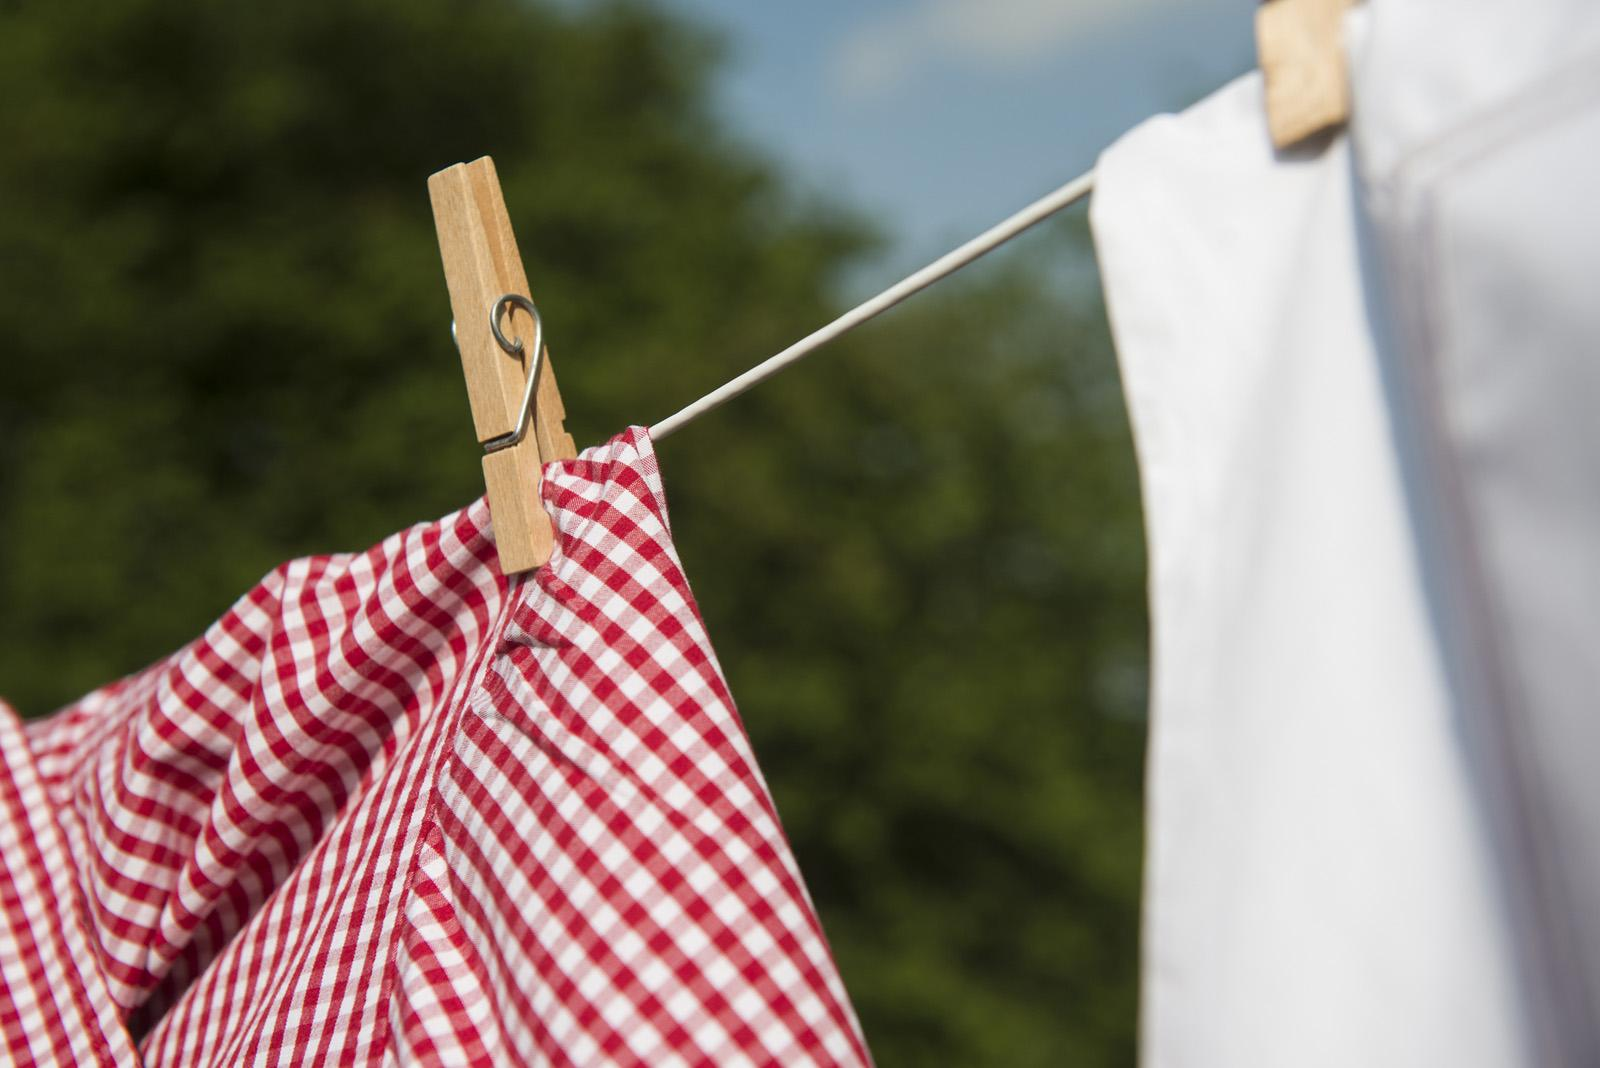 Clothes drying outside on a washing line.